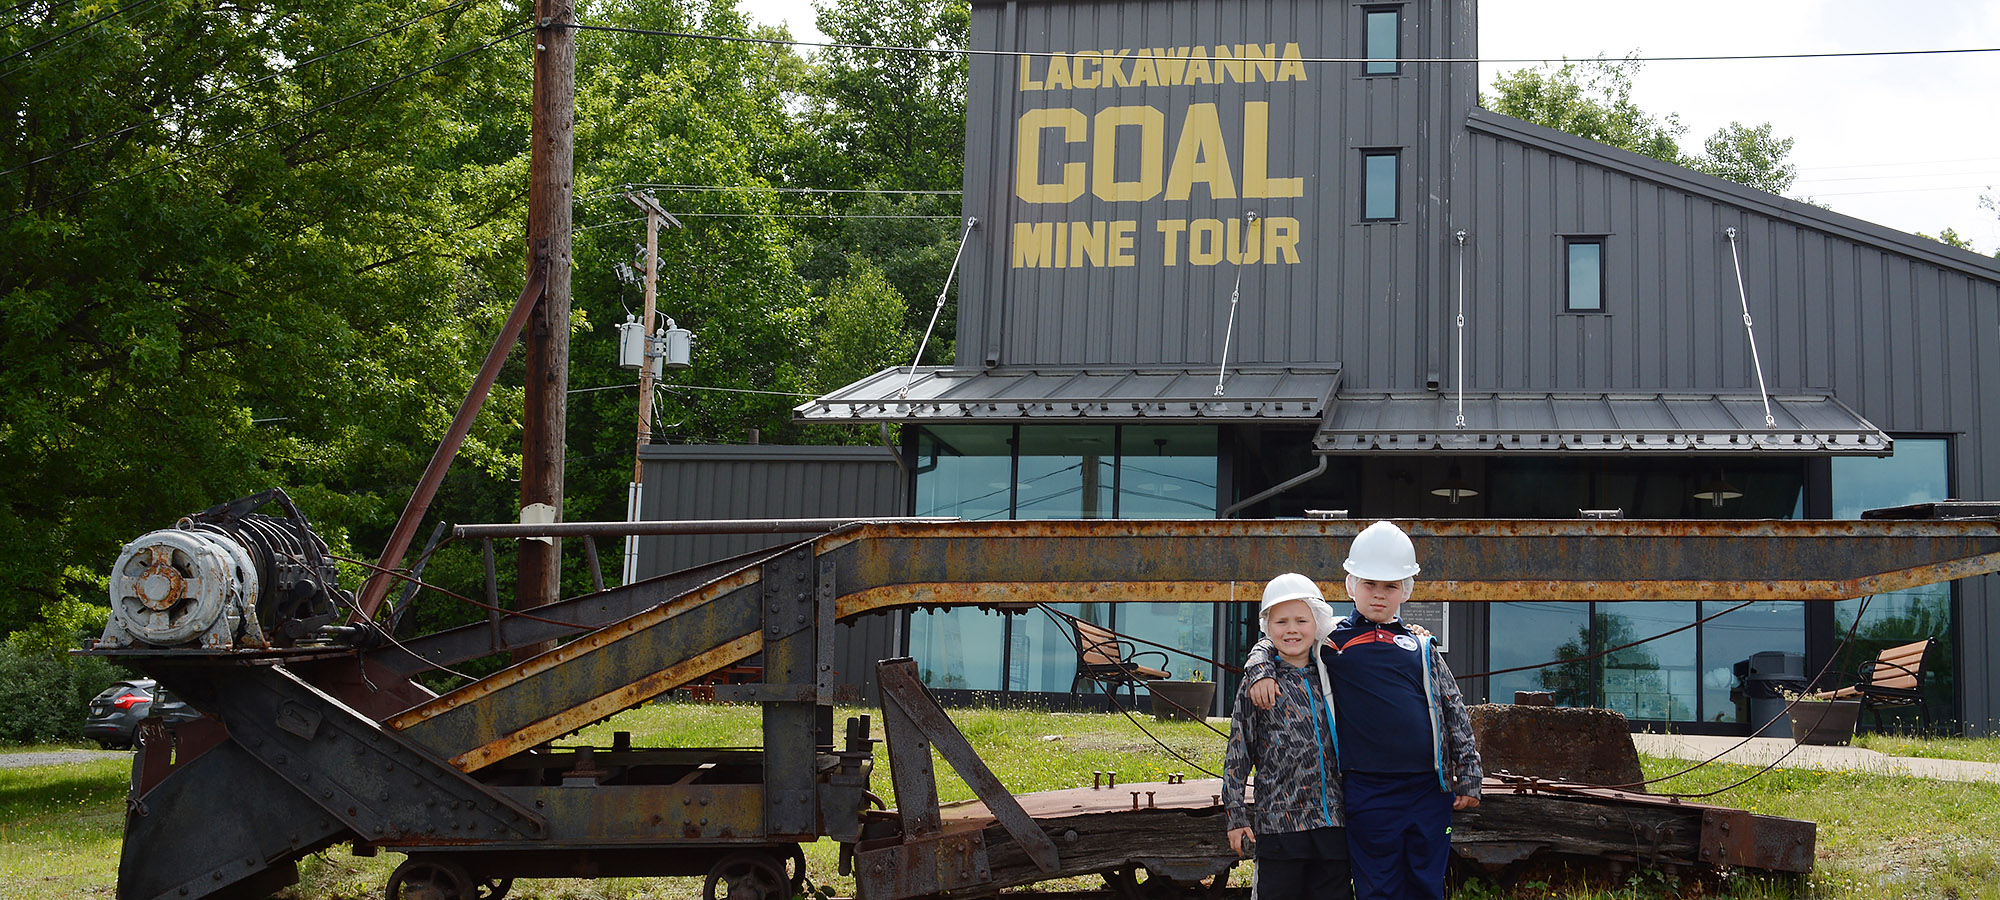 Lackawanna Coal Mine